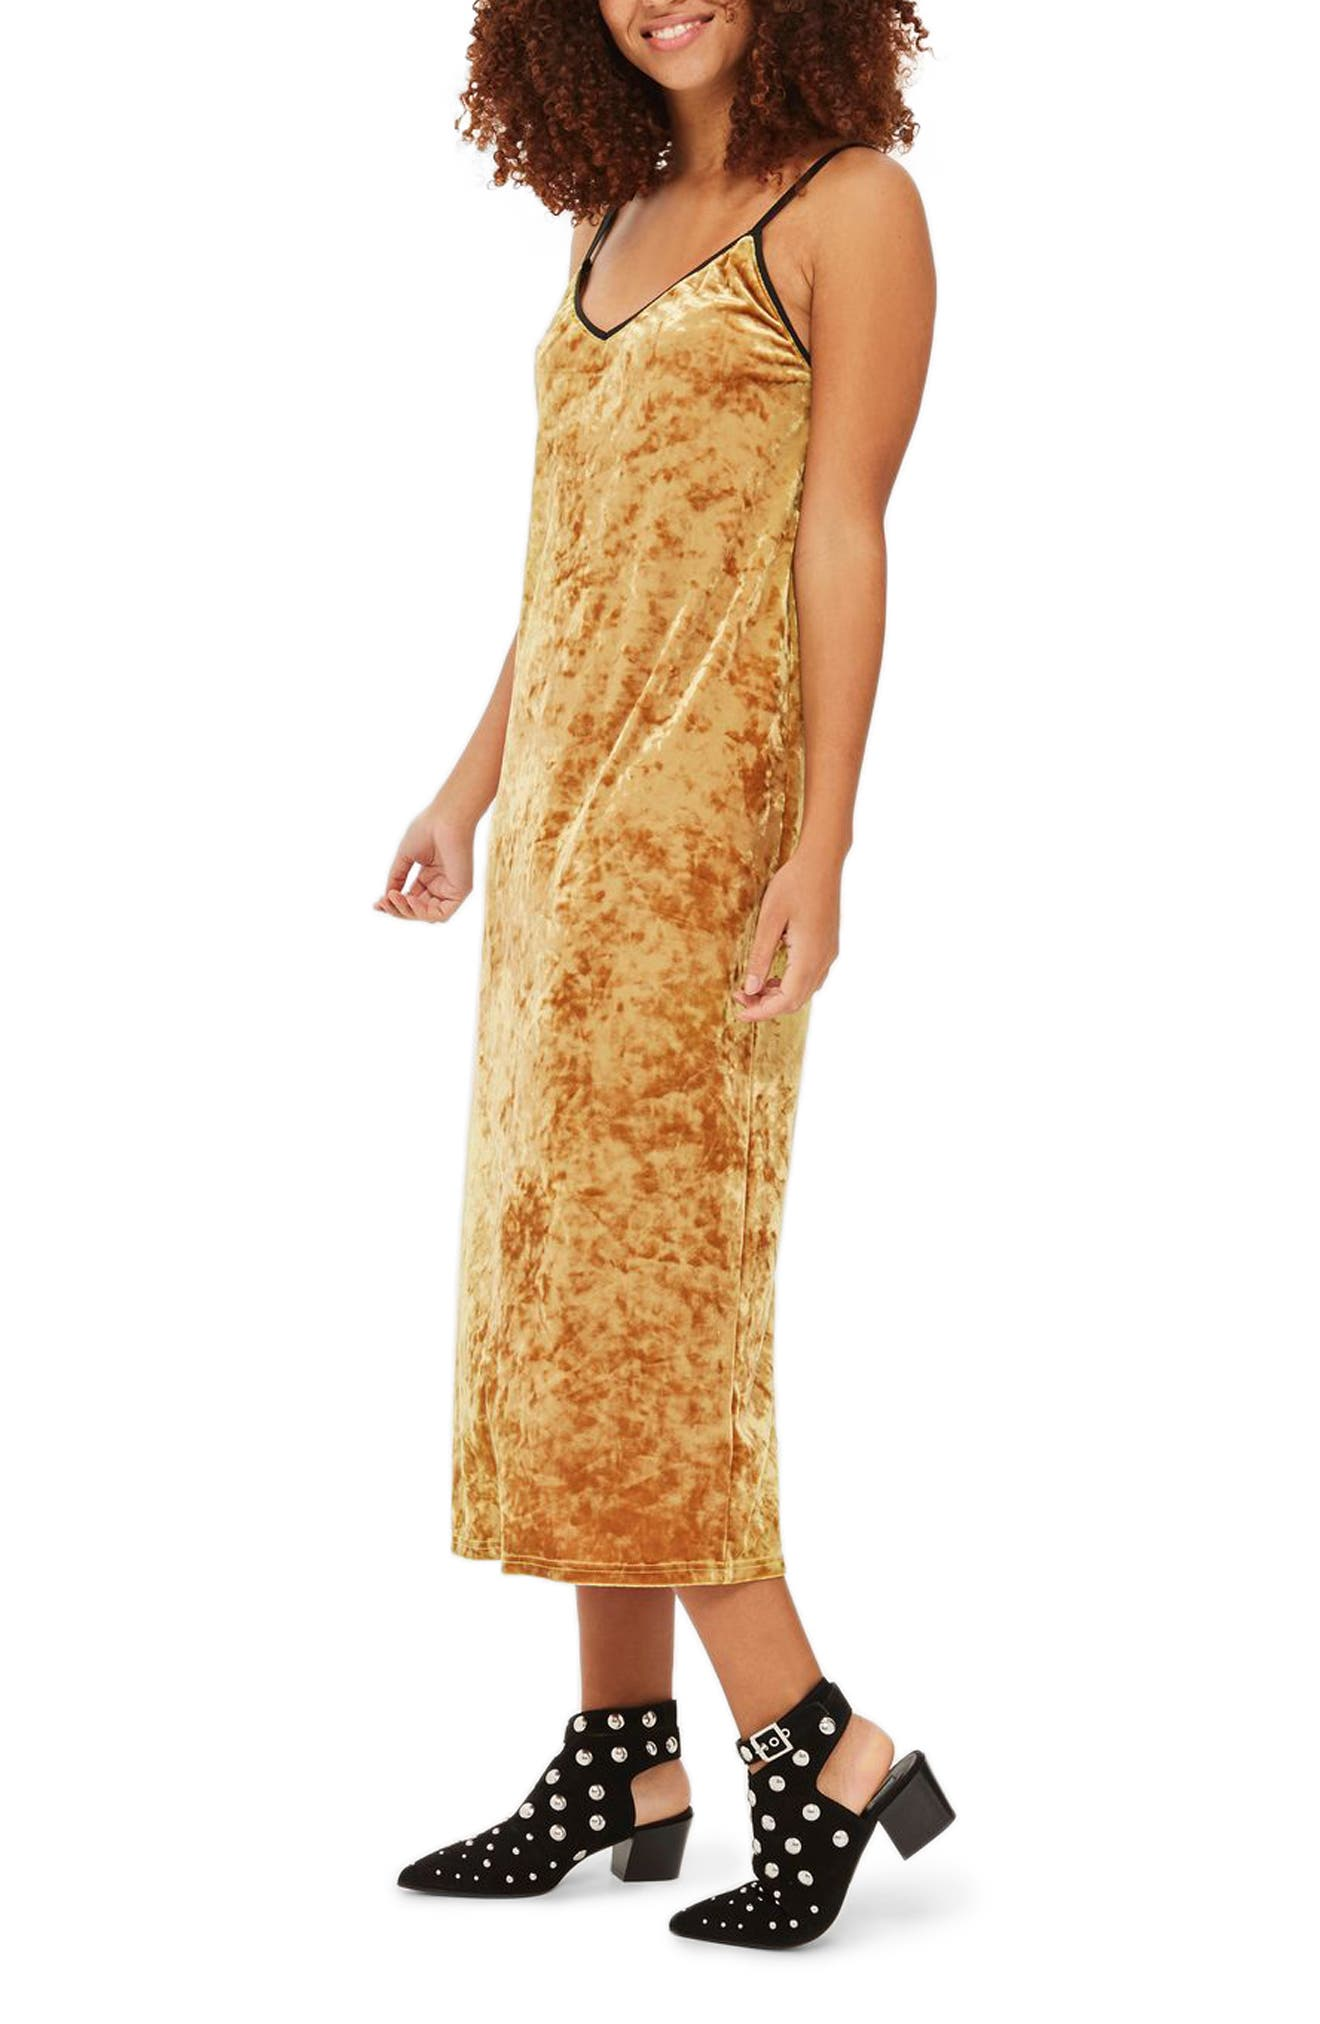 Topshop Crushed Velvet Midi Slipdress